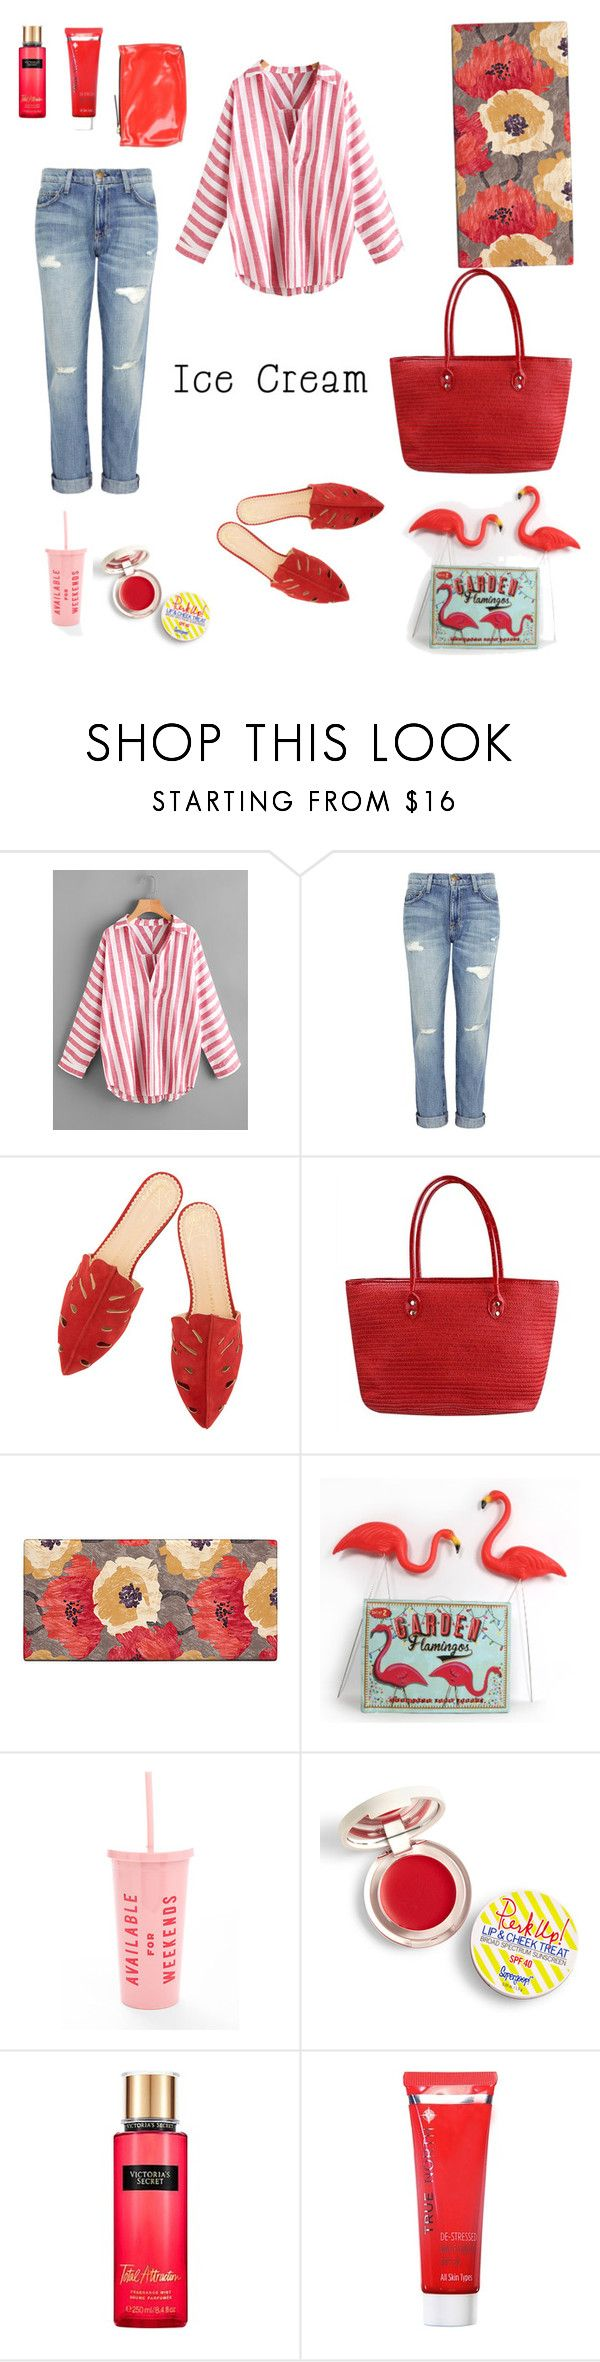 """Outfit Ice cream"" by celestegendra on Polyvore featuring moda, Current/Elliott, Improvements, Temerity Jones, ban.do, Supergoop!, Victoria's Secret y Marni"